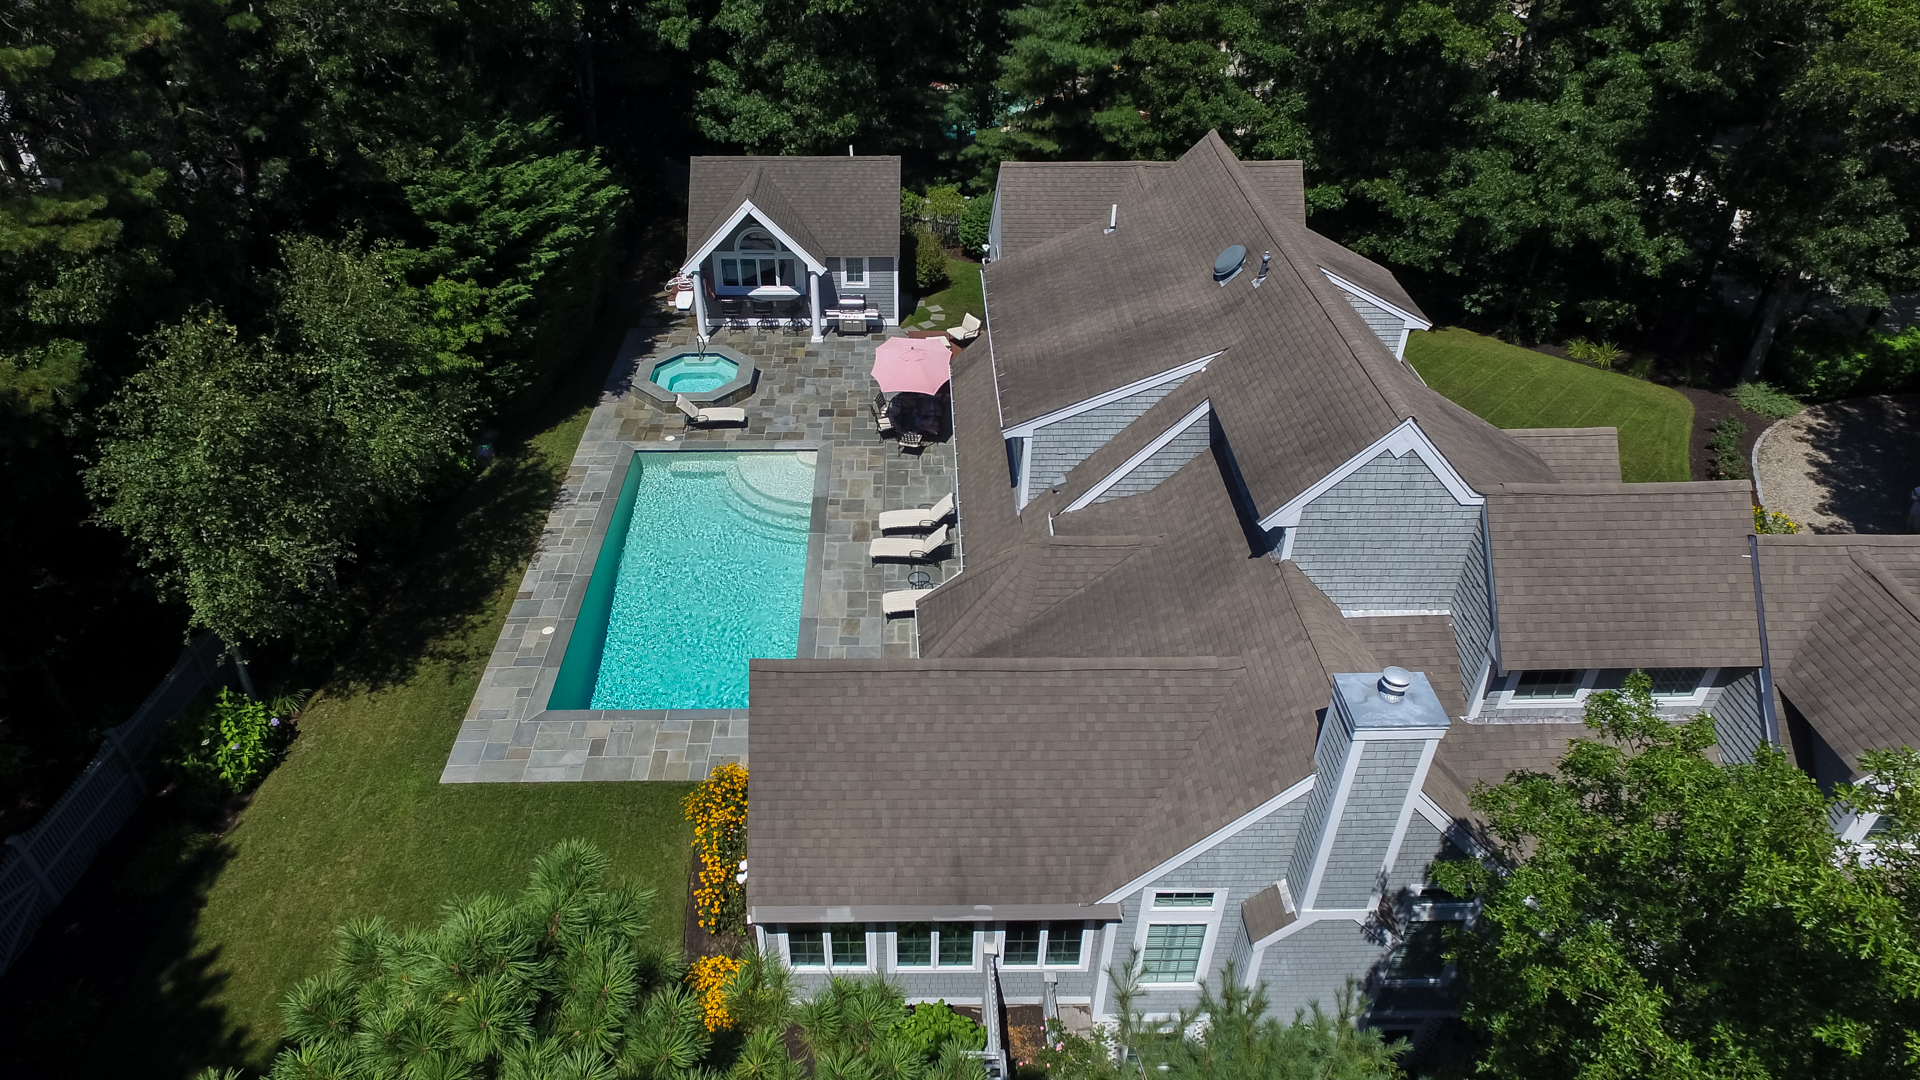 Villa per Vendita alle ore LUXURIOUS ONE-OF-A KIND COMPLETELY FURNISHED HOME 36 Topping Lift New Seabury, Massachusetts, 02649 Stati UnitiIn/In giro: Mashpee